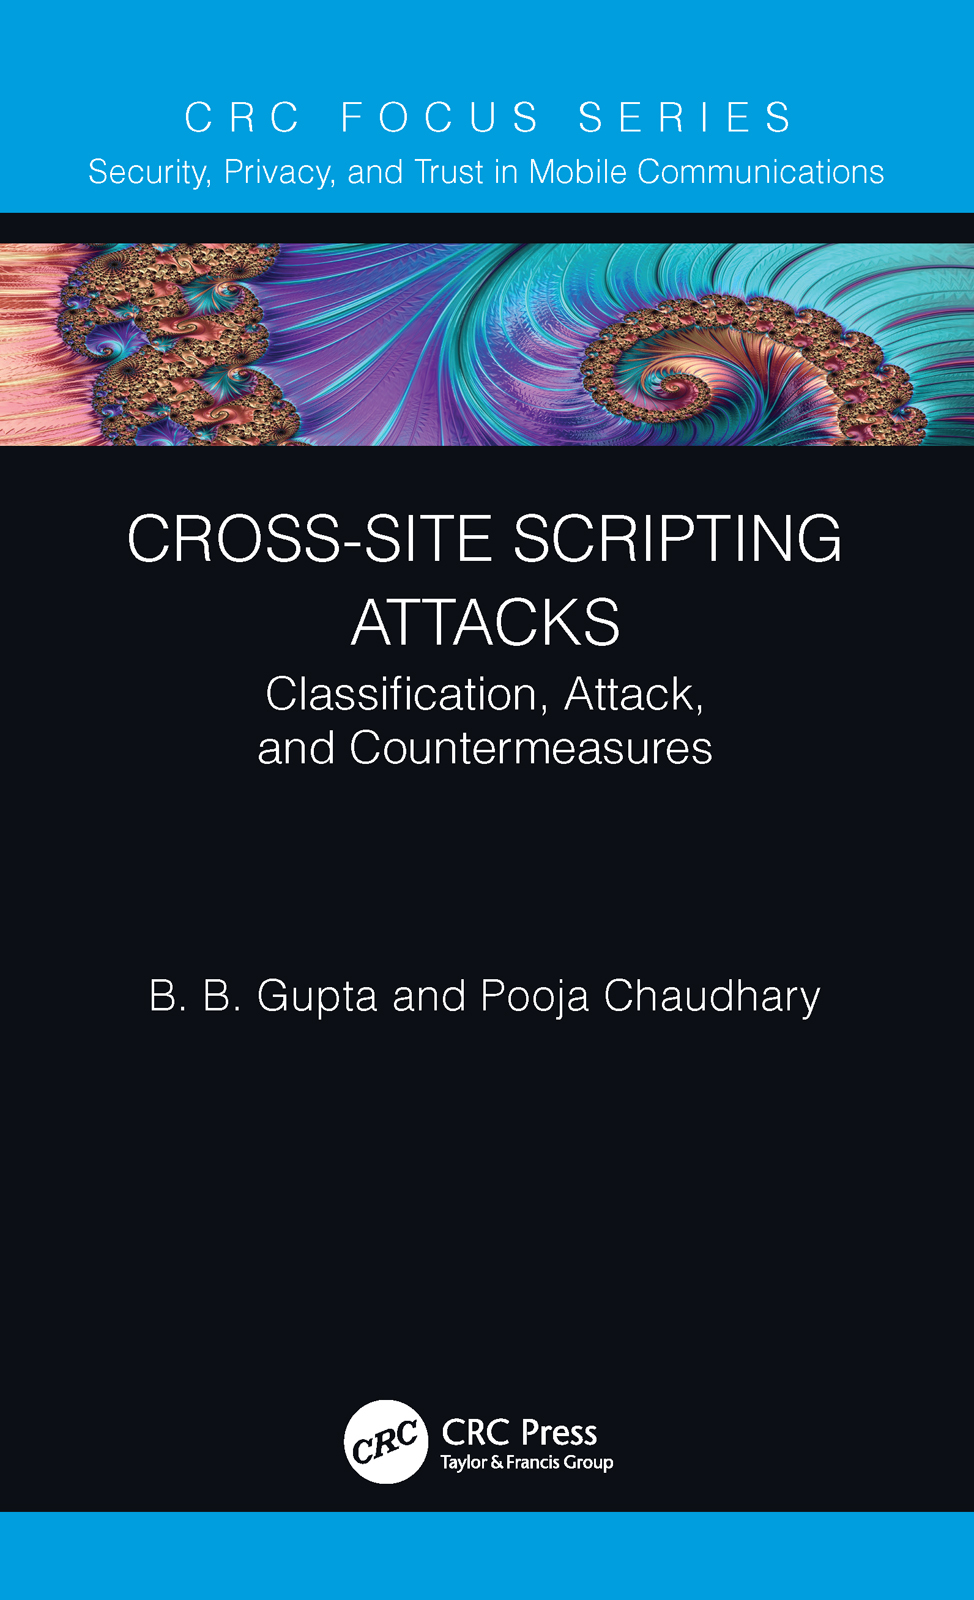 Cross-Site Scripting Attacks